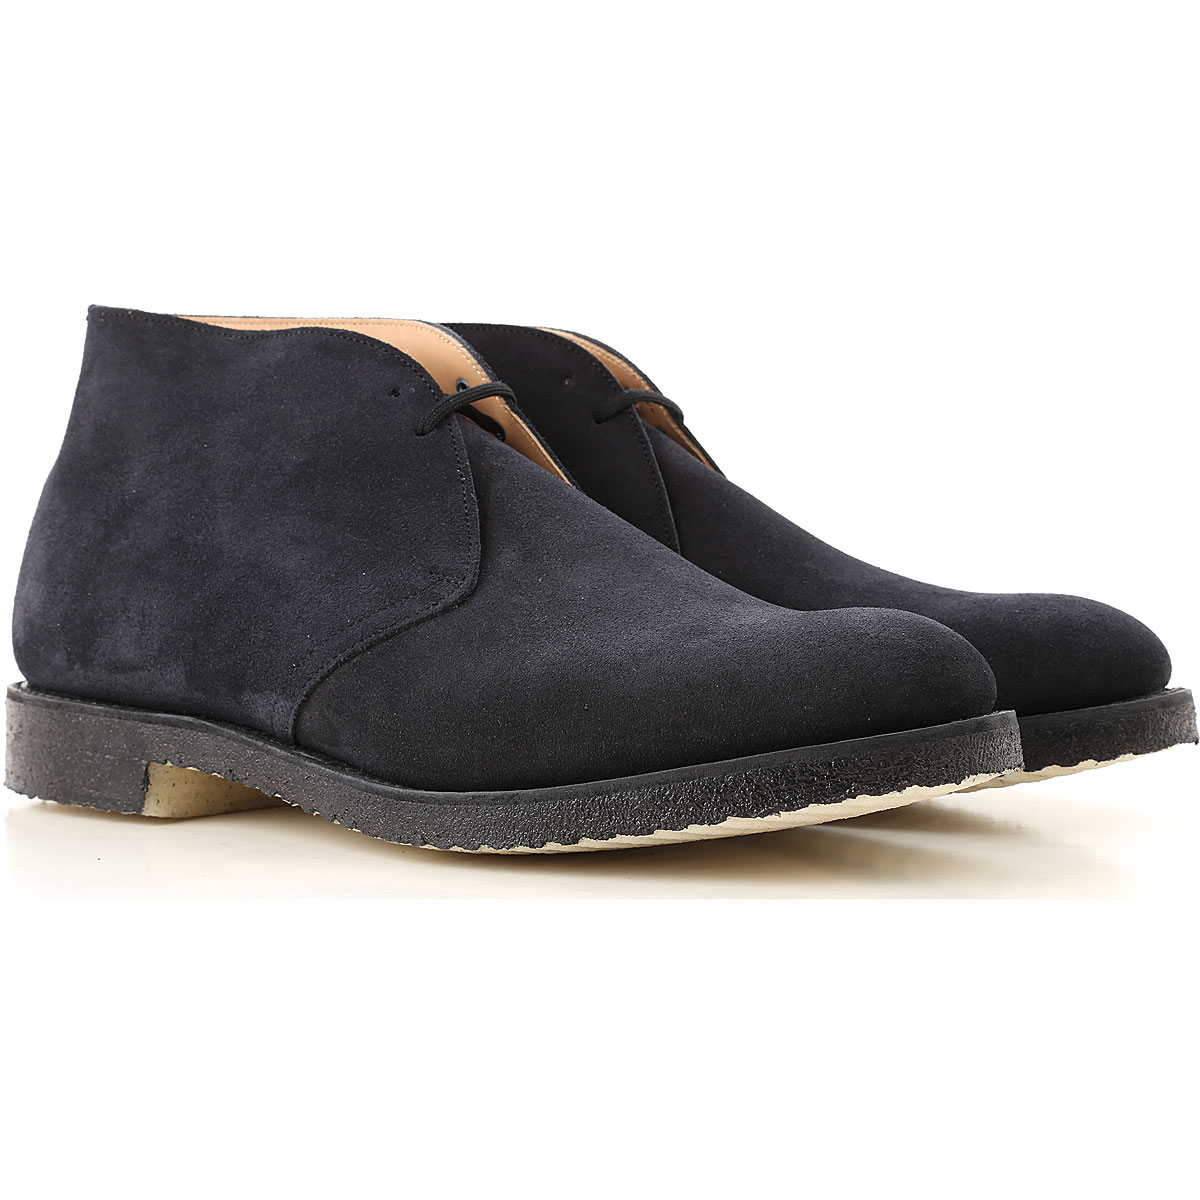 Image of Church's Desert Boots Chukka for Men, navy, Suede leather, 2017, 10 10.5 11 7 7.5 8 8.5 9 9.5